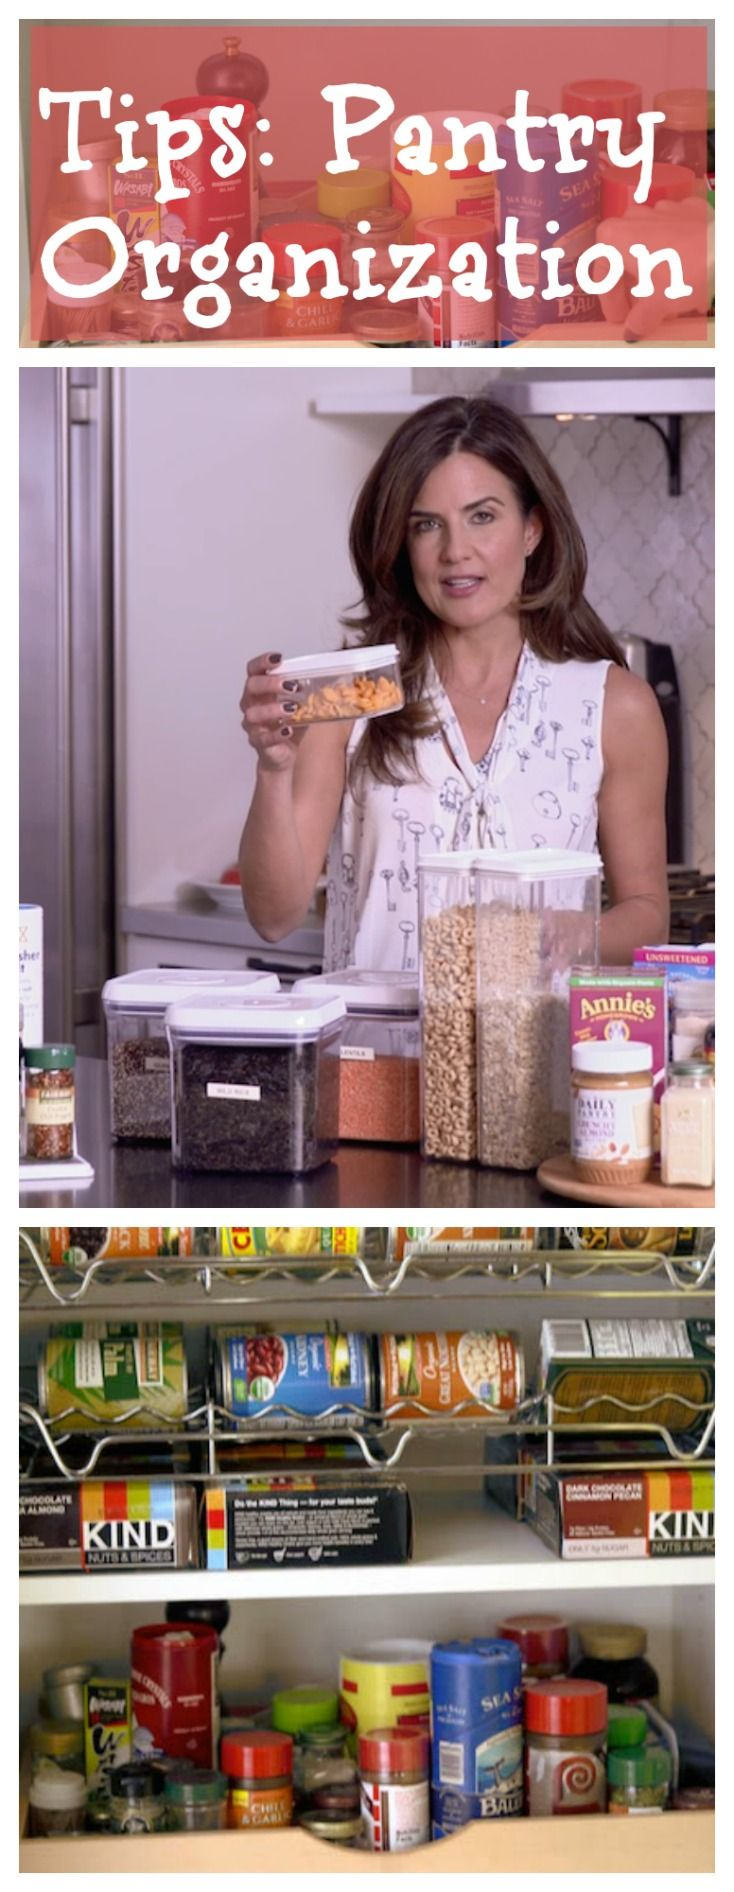 Tips for organizing your pantry, from using clear